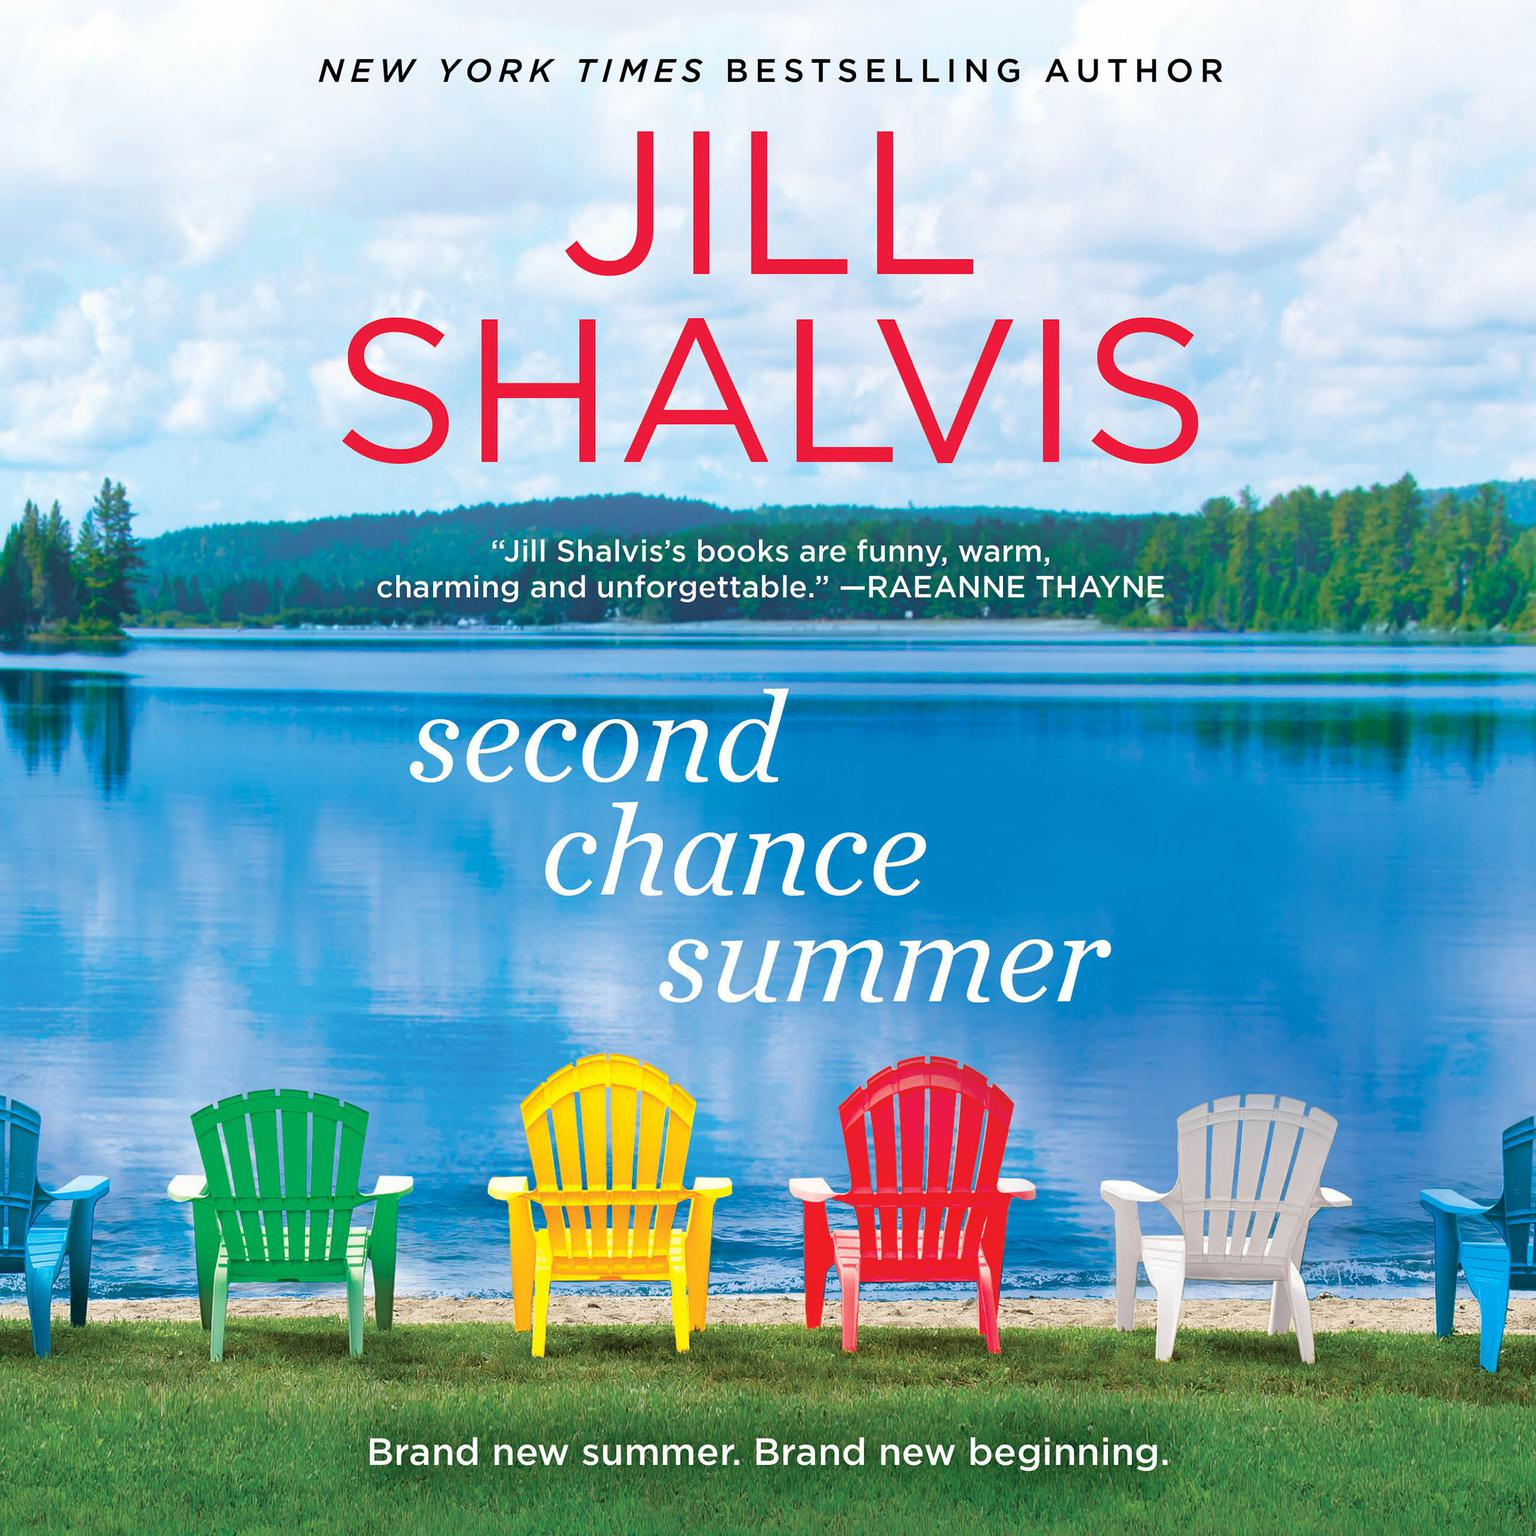 jill shalvis cedar ridge series epub download